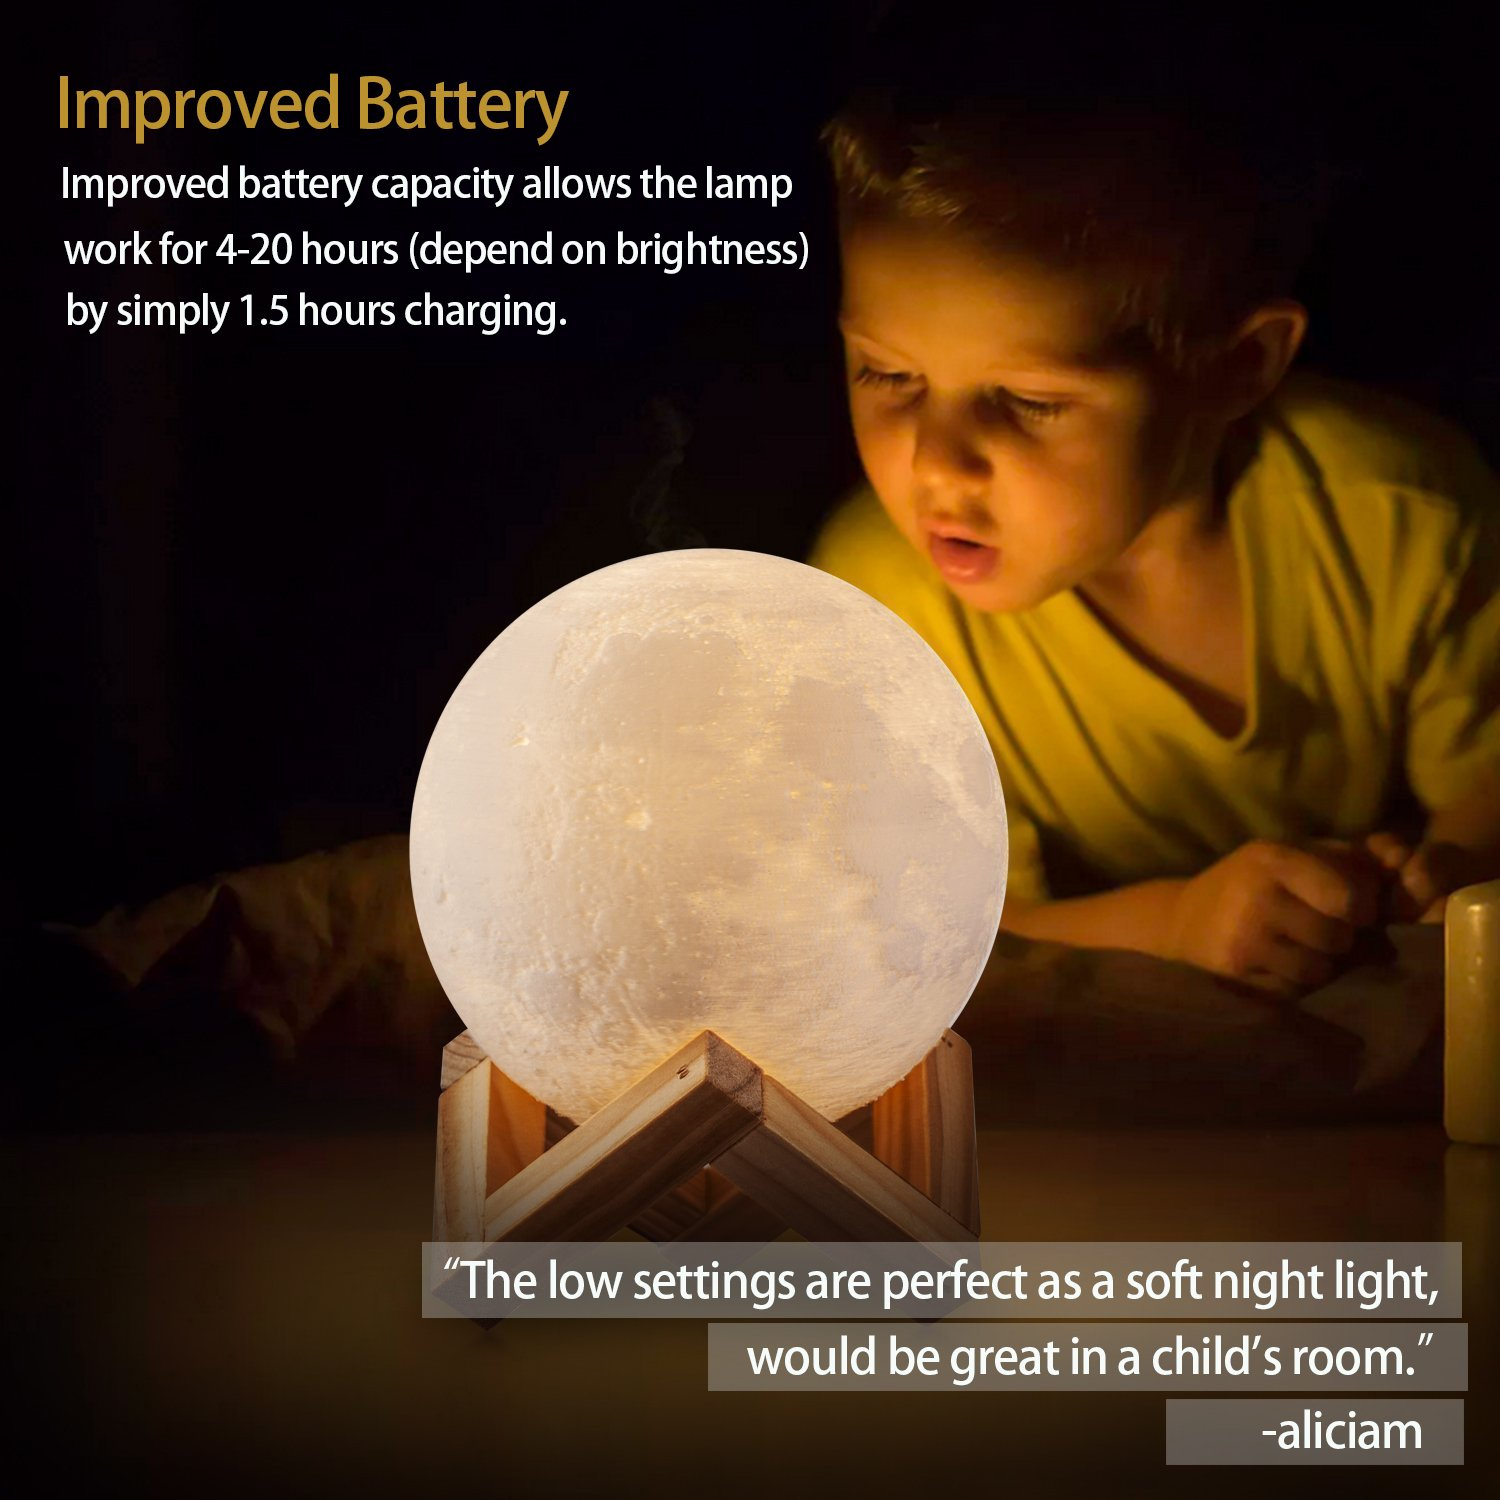 ACED Moon Light, 3D Printing LED Moon Lamp Large, Touch Control, Ajustable Brightness, USB Recharge, Seamless Lunar Moon Night Light Lamp with Stand for Bedrooms, Mother's Day Gift, 7.1Inch by ACED (Image #5)